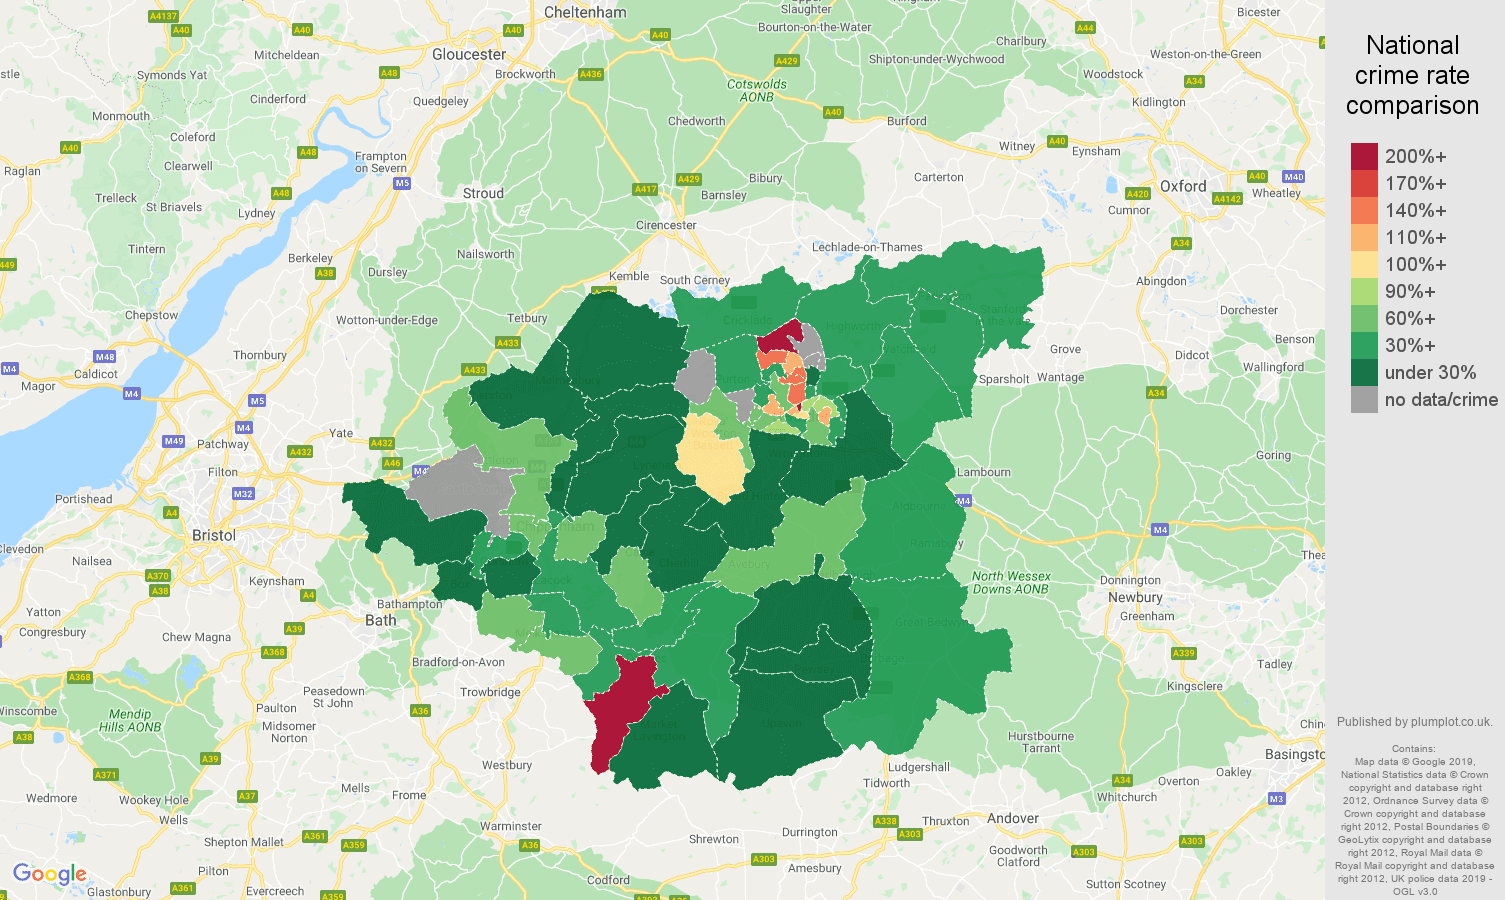 Swindon other crime rate comparison map